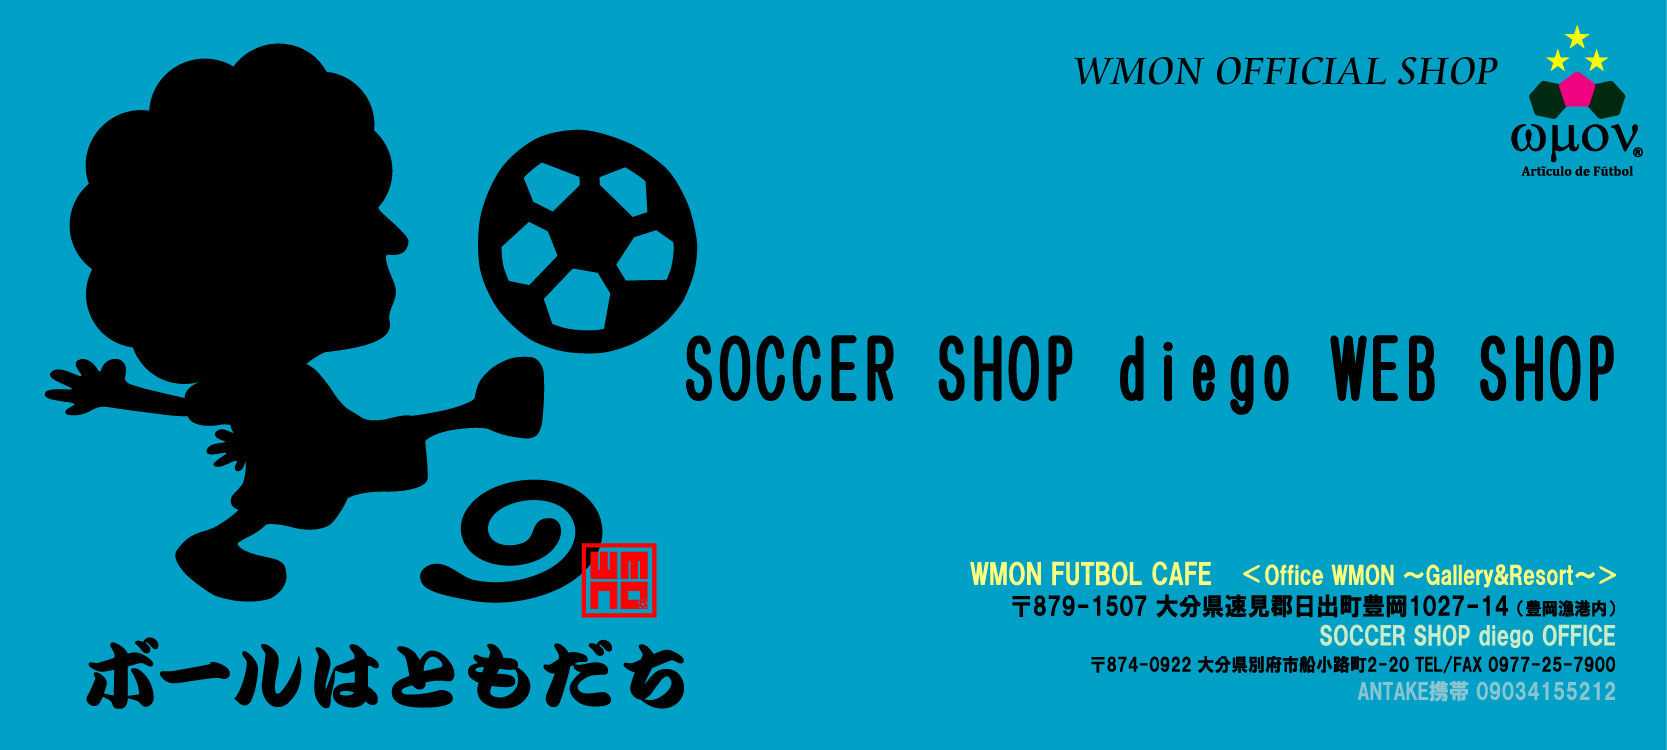 SOCCER SHOP diego WEB SHOP